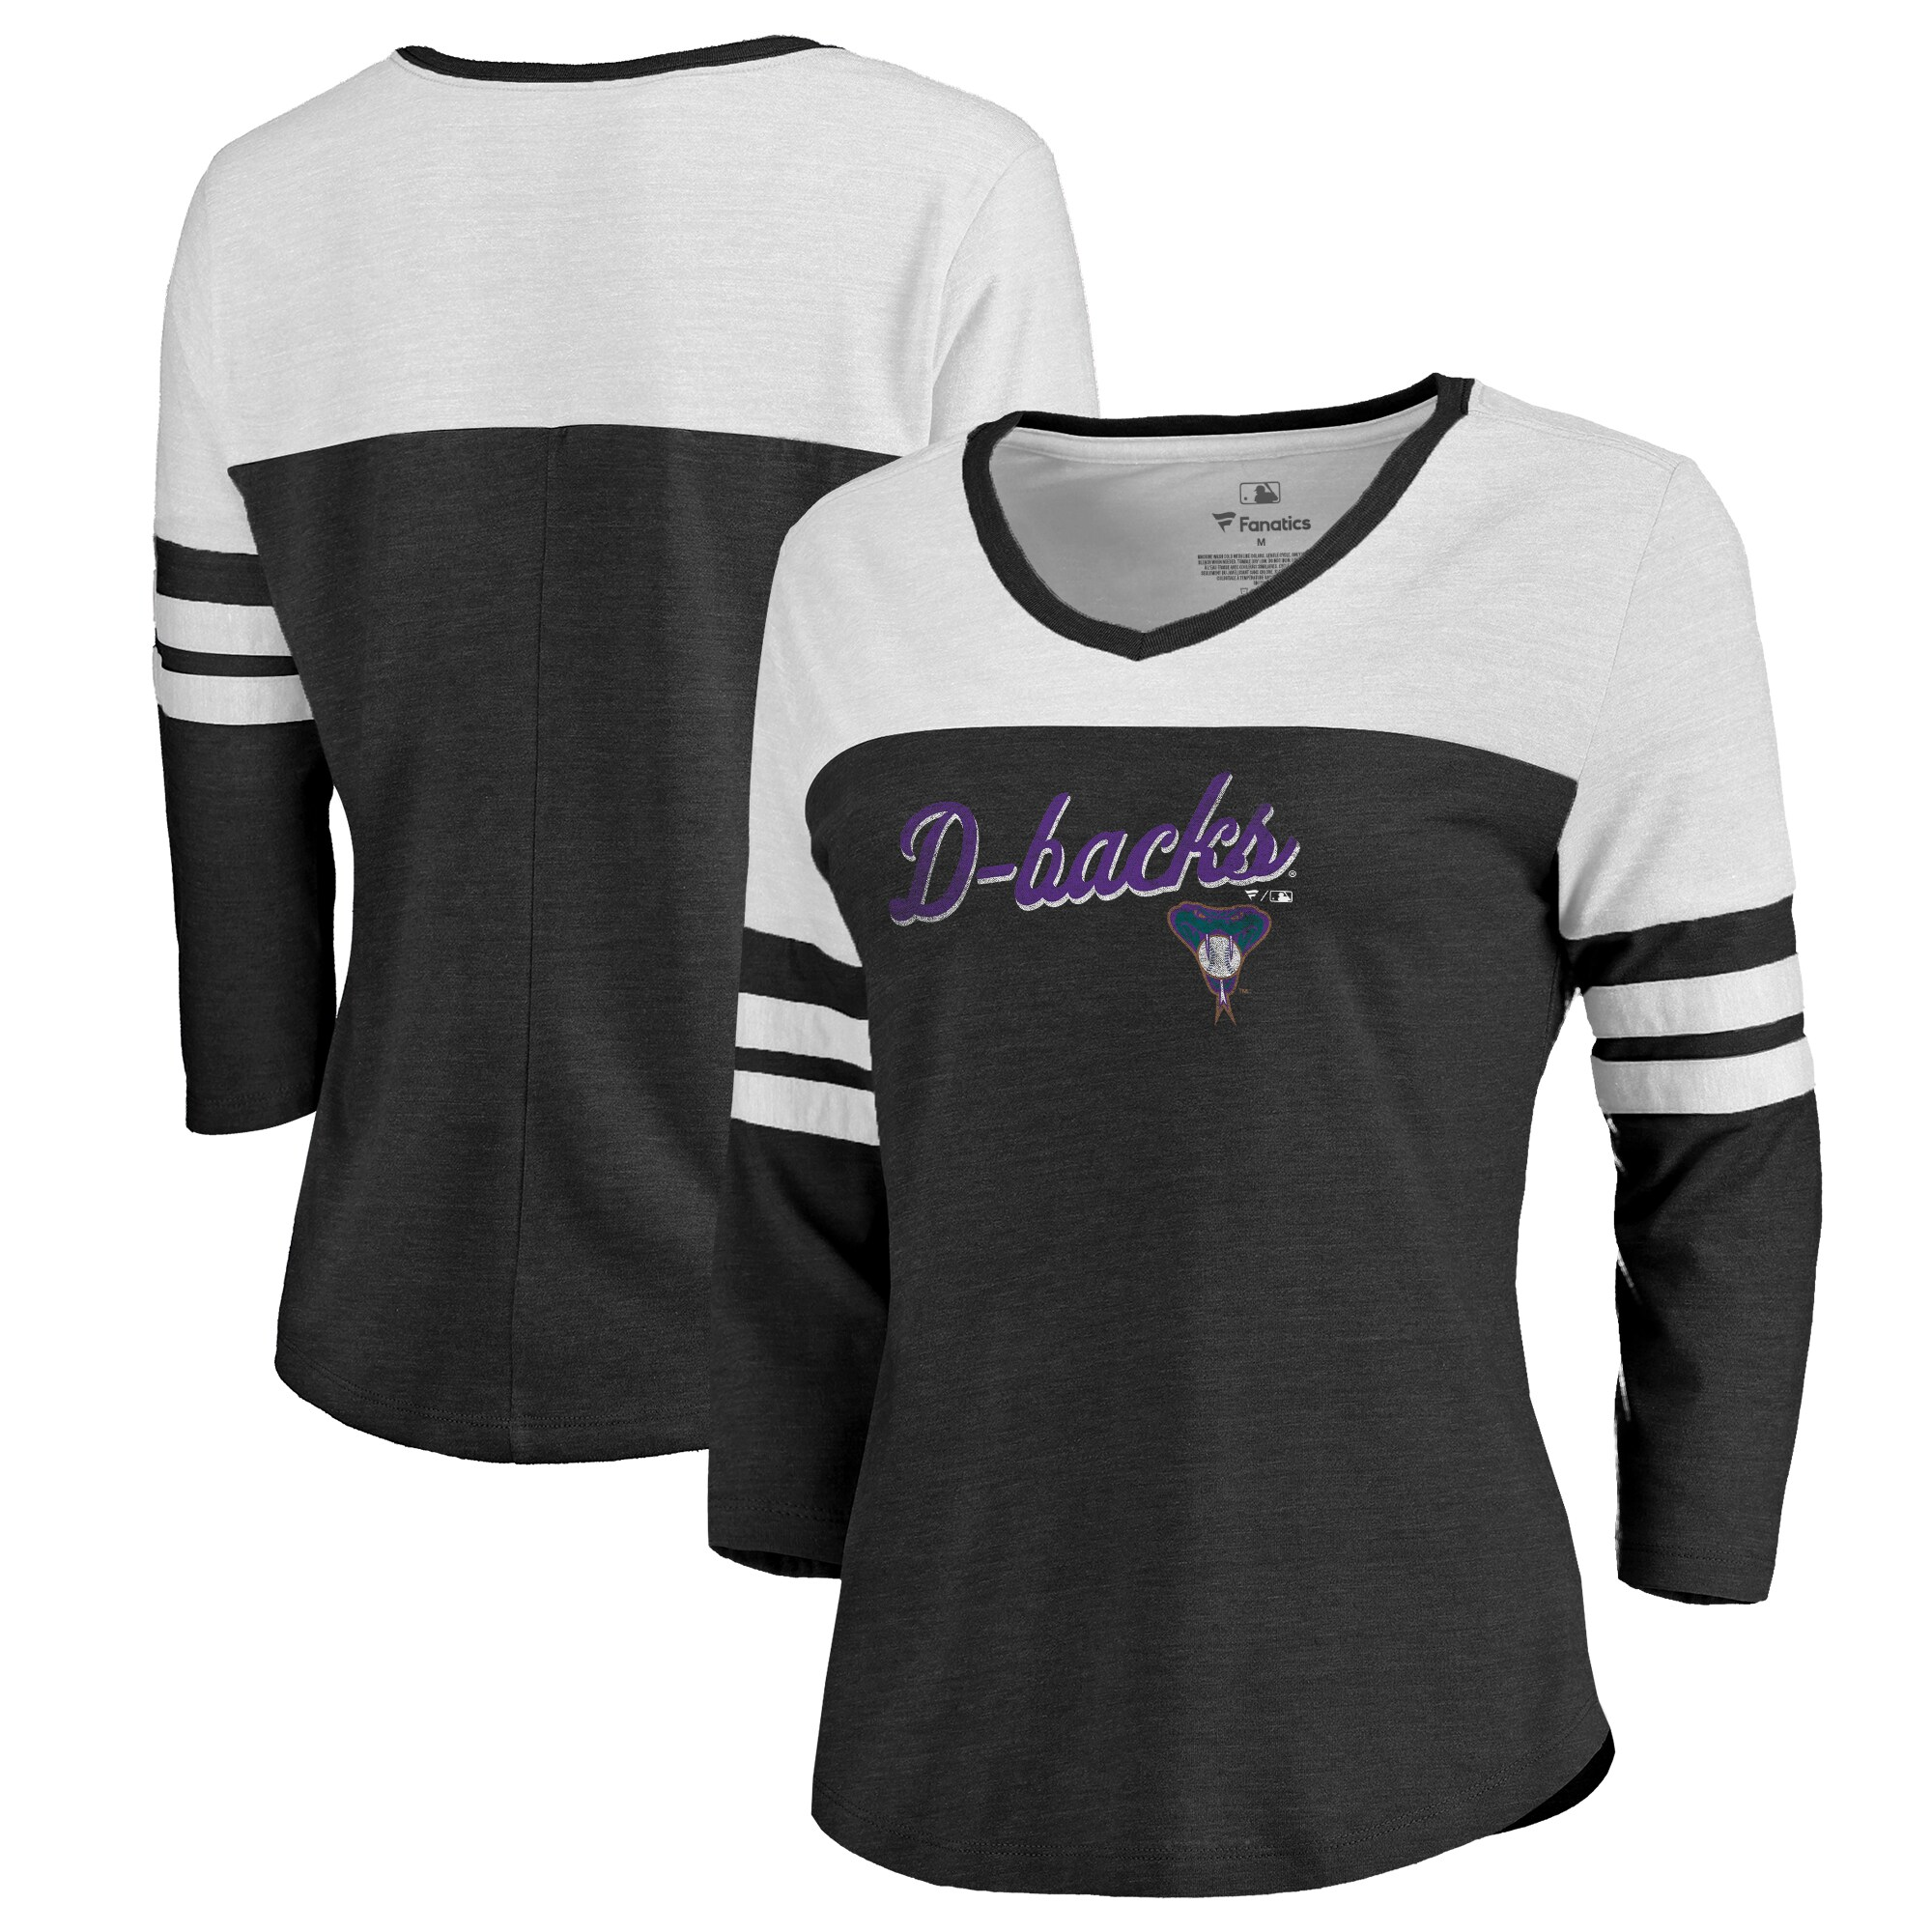 Fanatics Branded Arizona Diamondbacks Women's Black Rising Script Color Block 3/4 Sleeve Tri-Blend T-Shirt